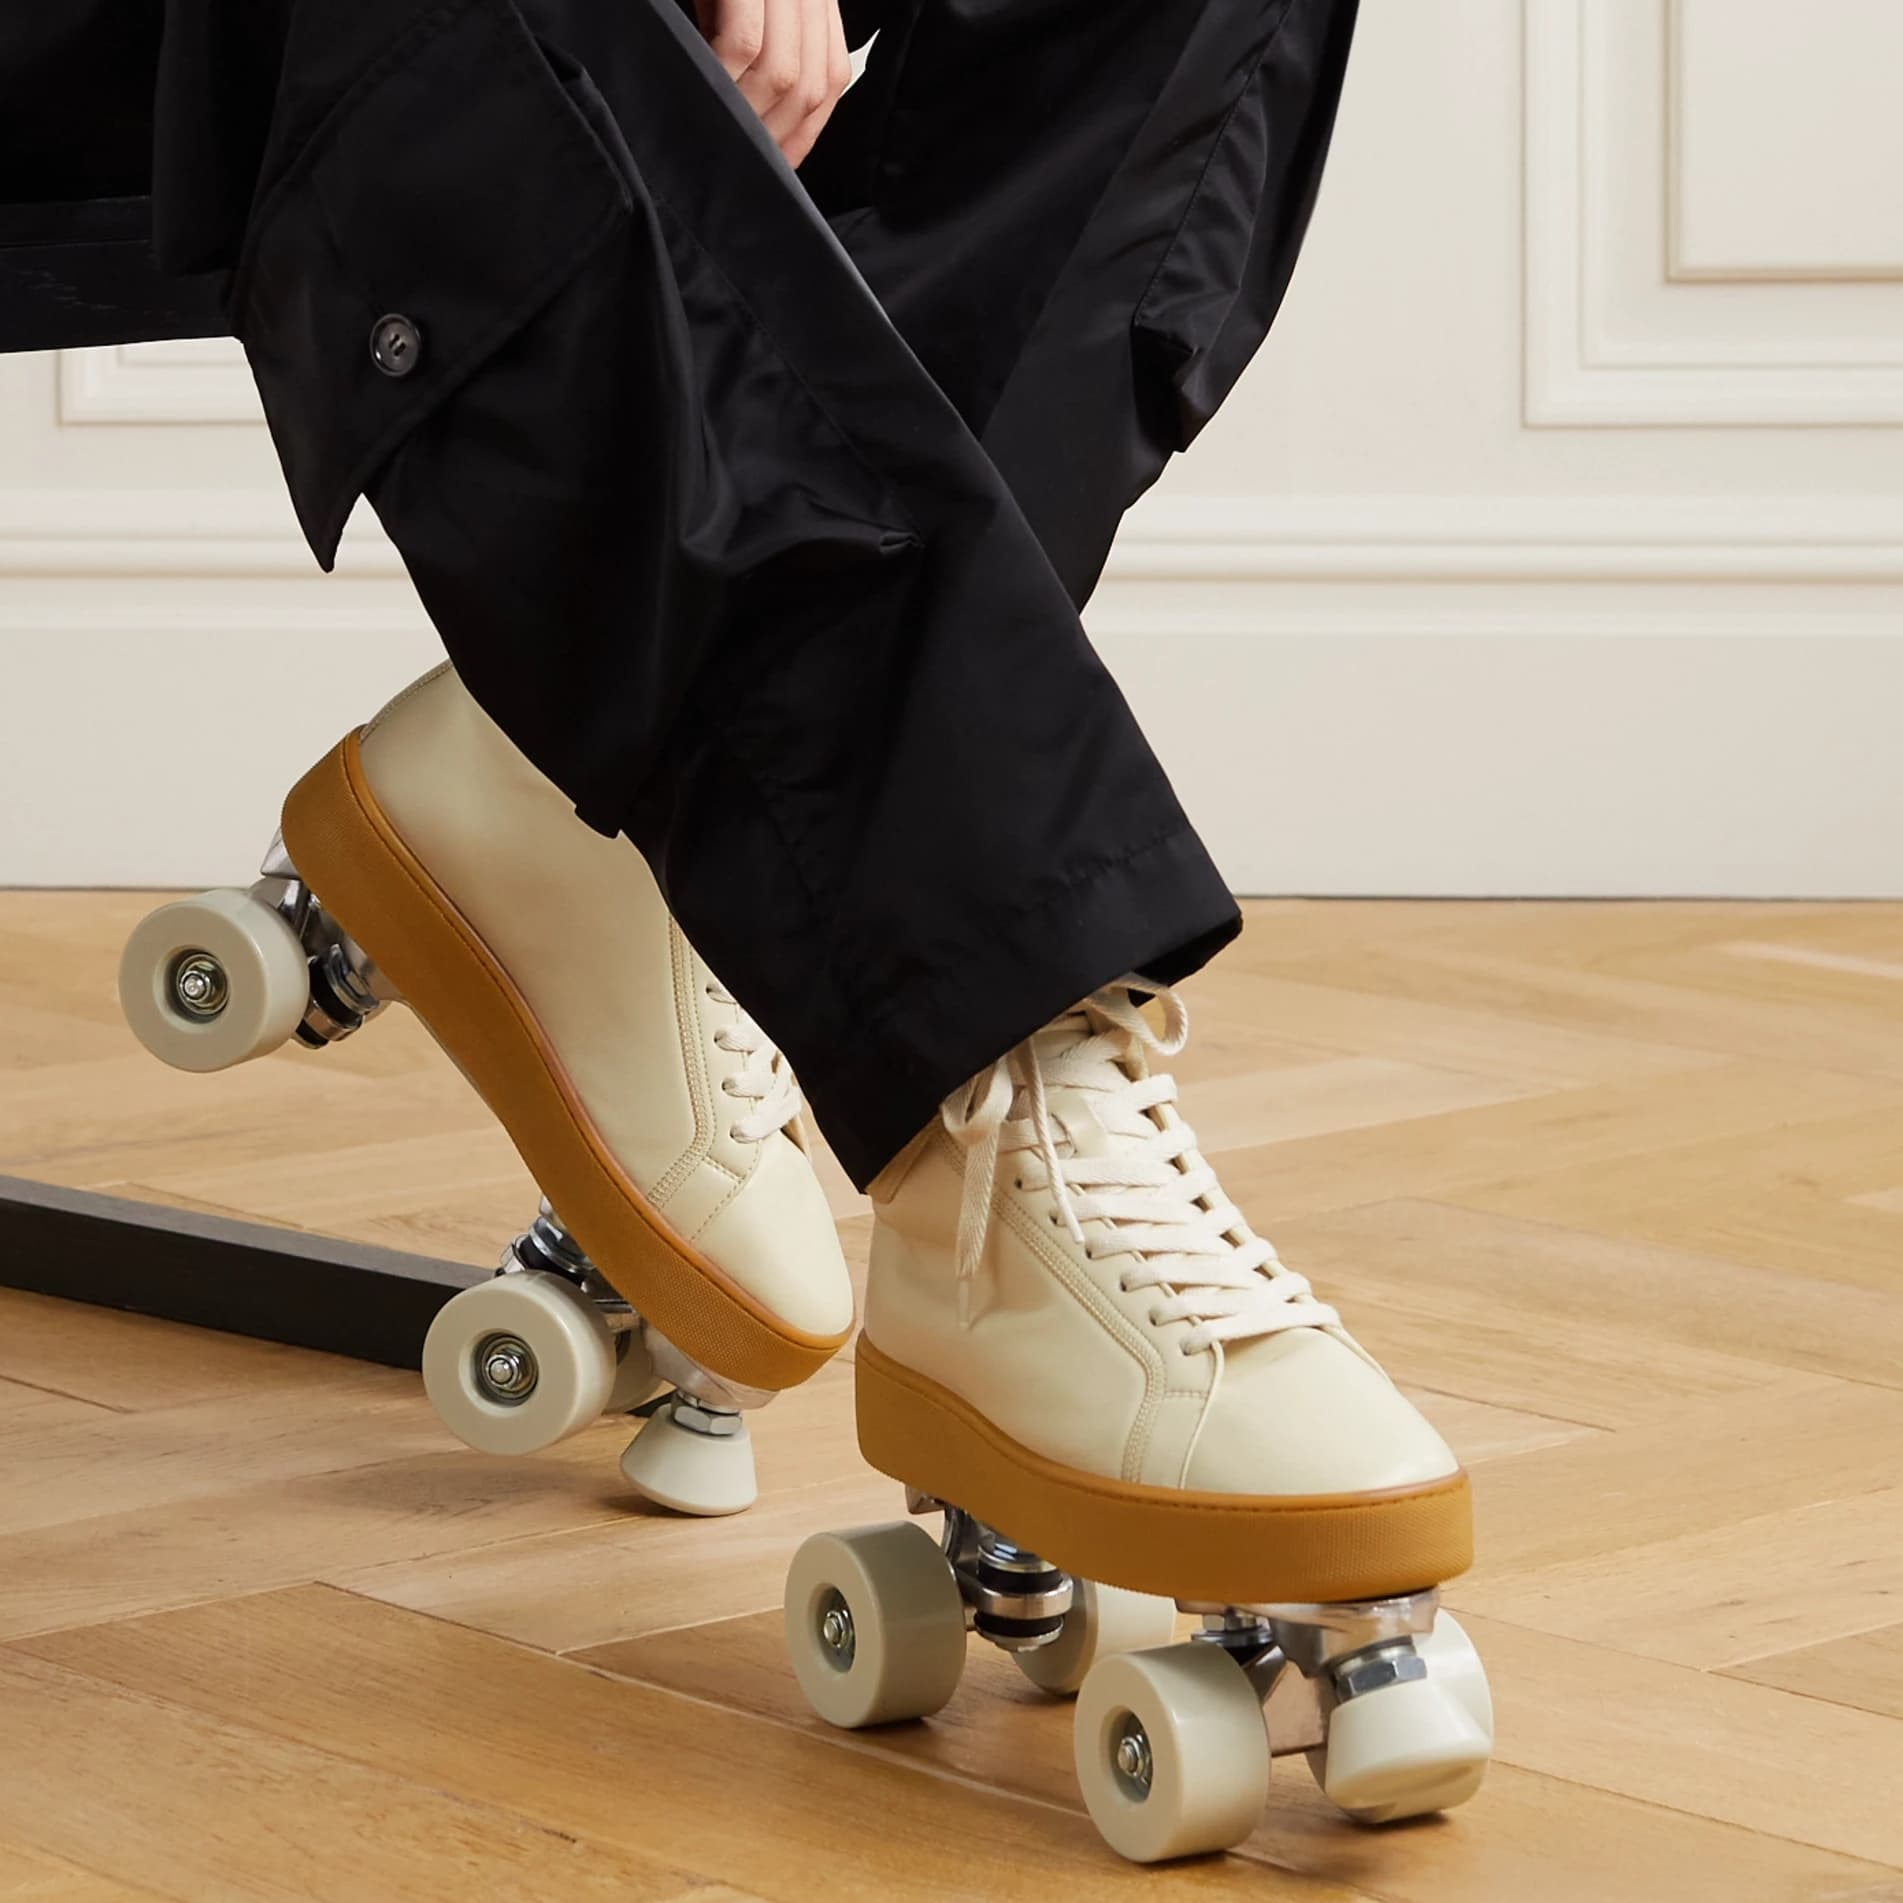 Bottega Veneta's beige The Quilt lace-up leather roller skates have been crafted by hand at the house's atelier